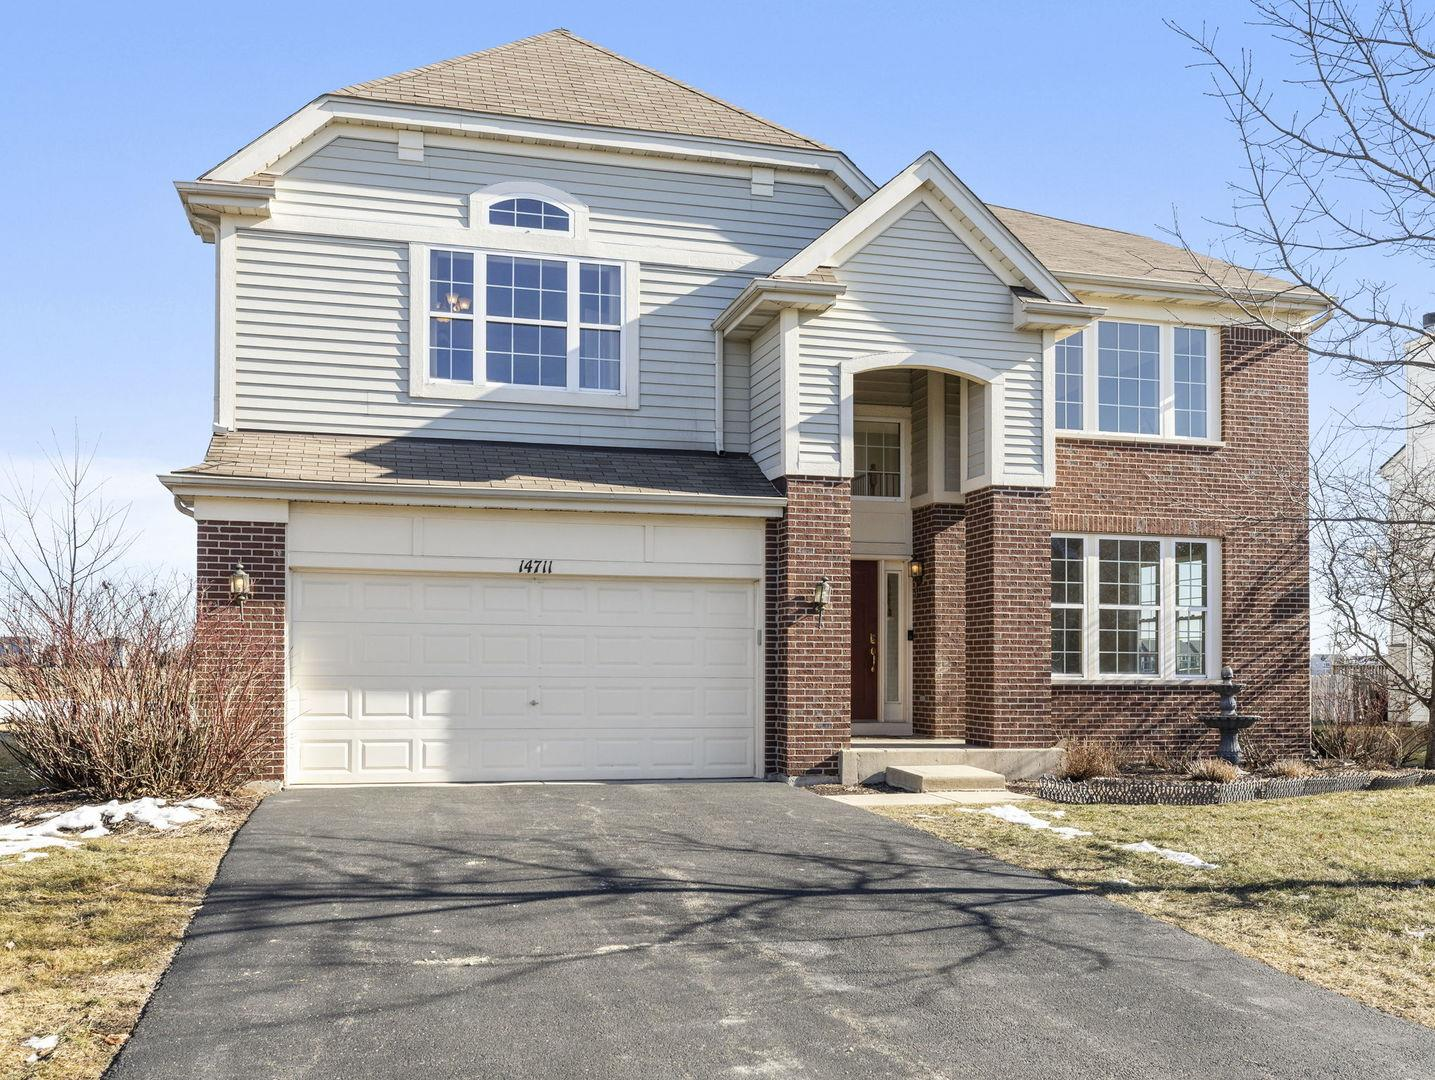 14711 Independence Drive, Plainfield, IL 60544 - #: 10980342